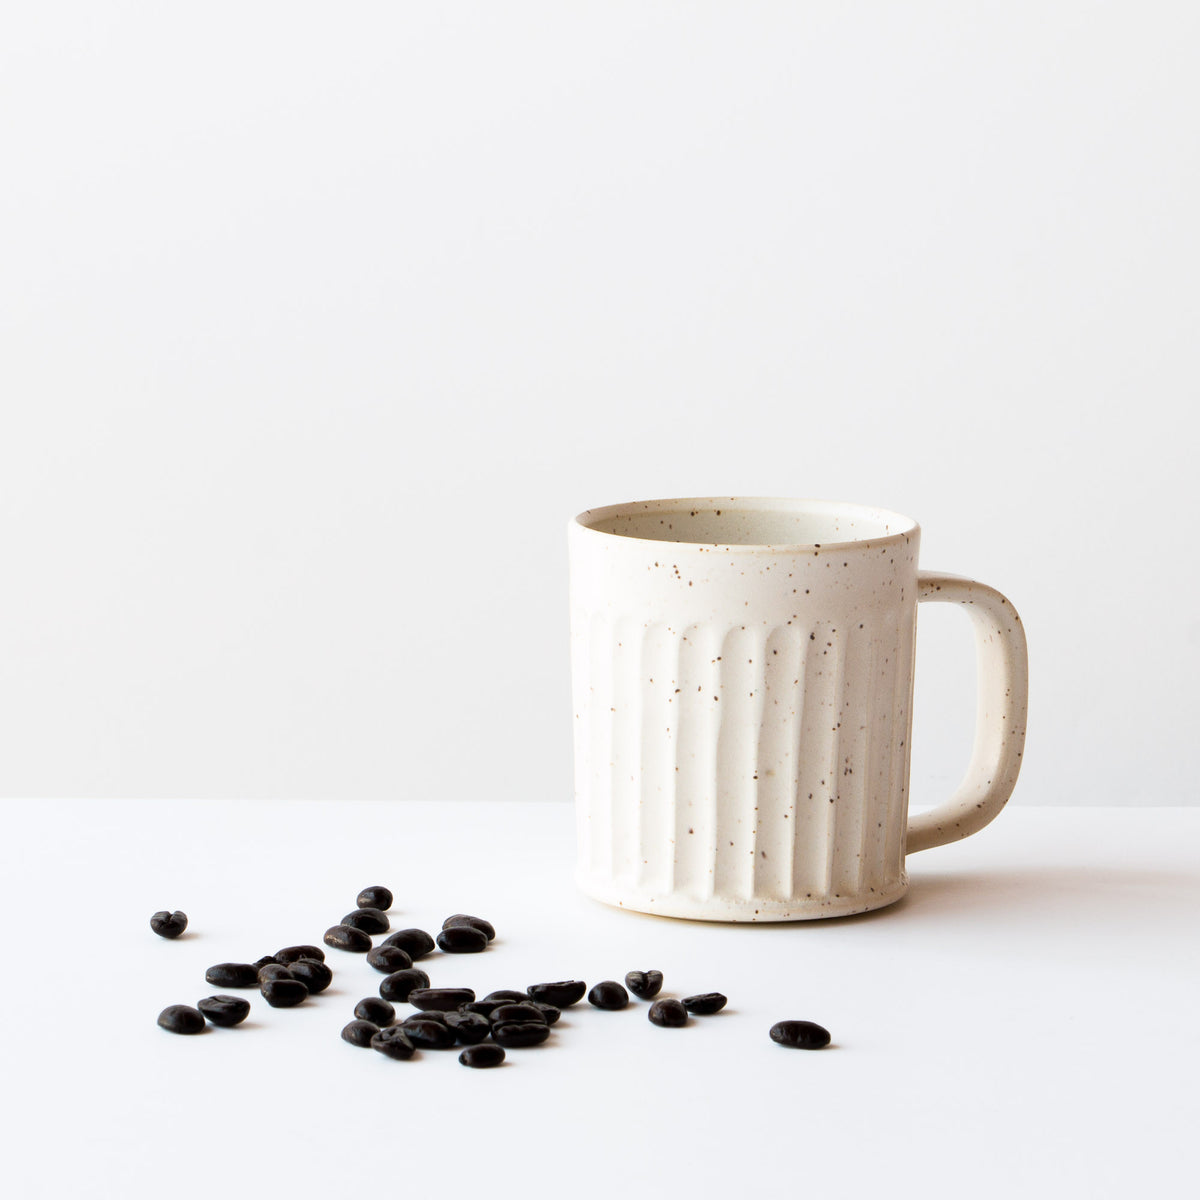 Speckled Off-White - Hand Thrown Ceramic Coffee Mug - Handmade in Quebec